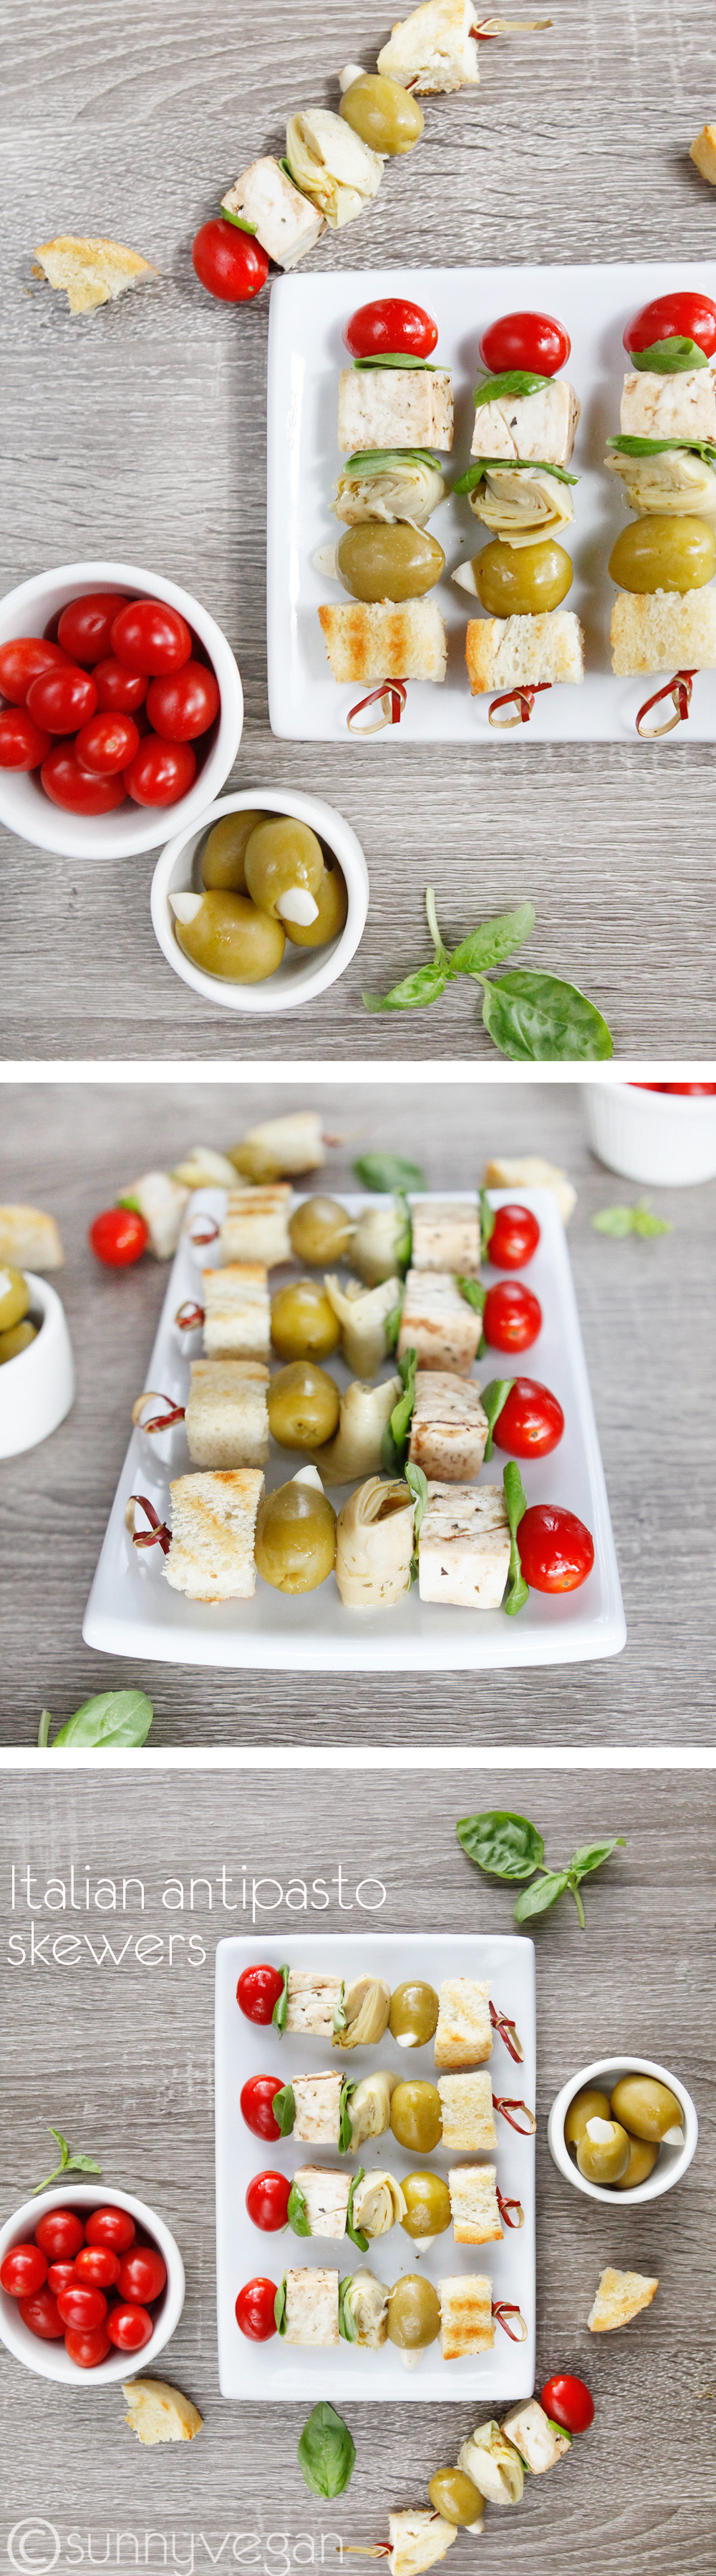 tailgate antipasto skewer recipe from sunny vegan